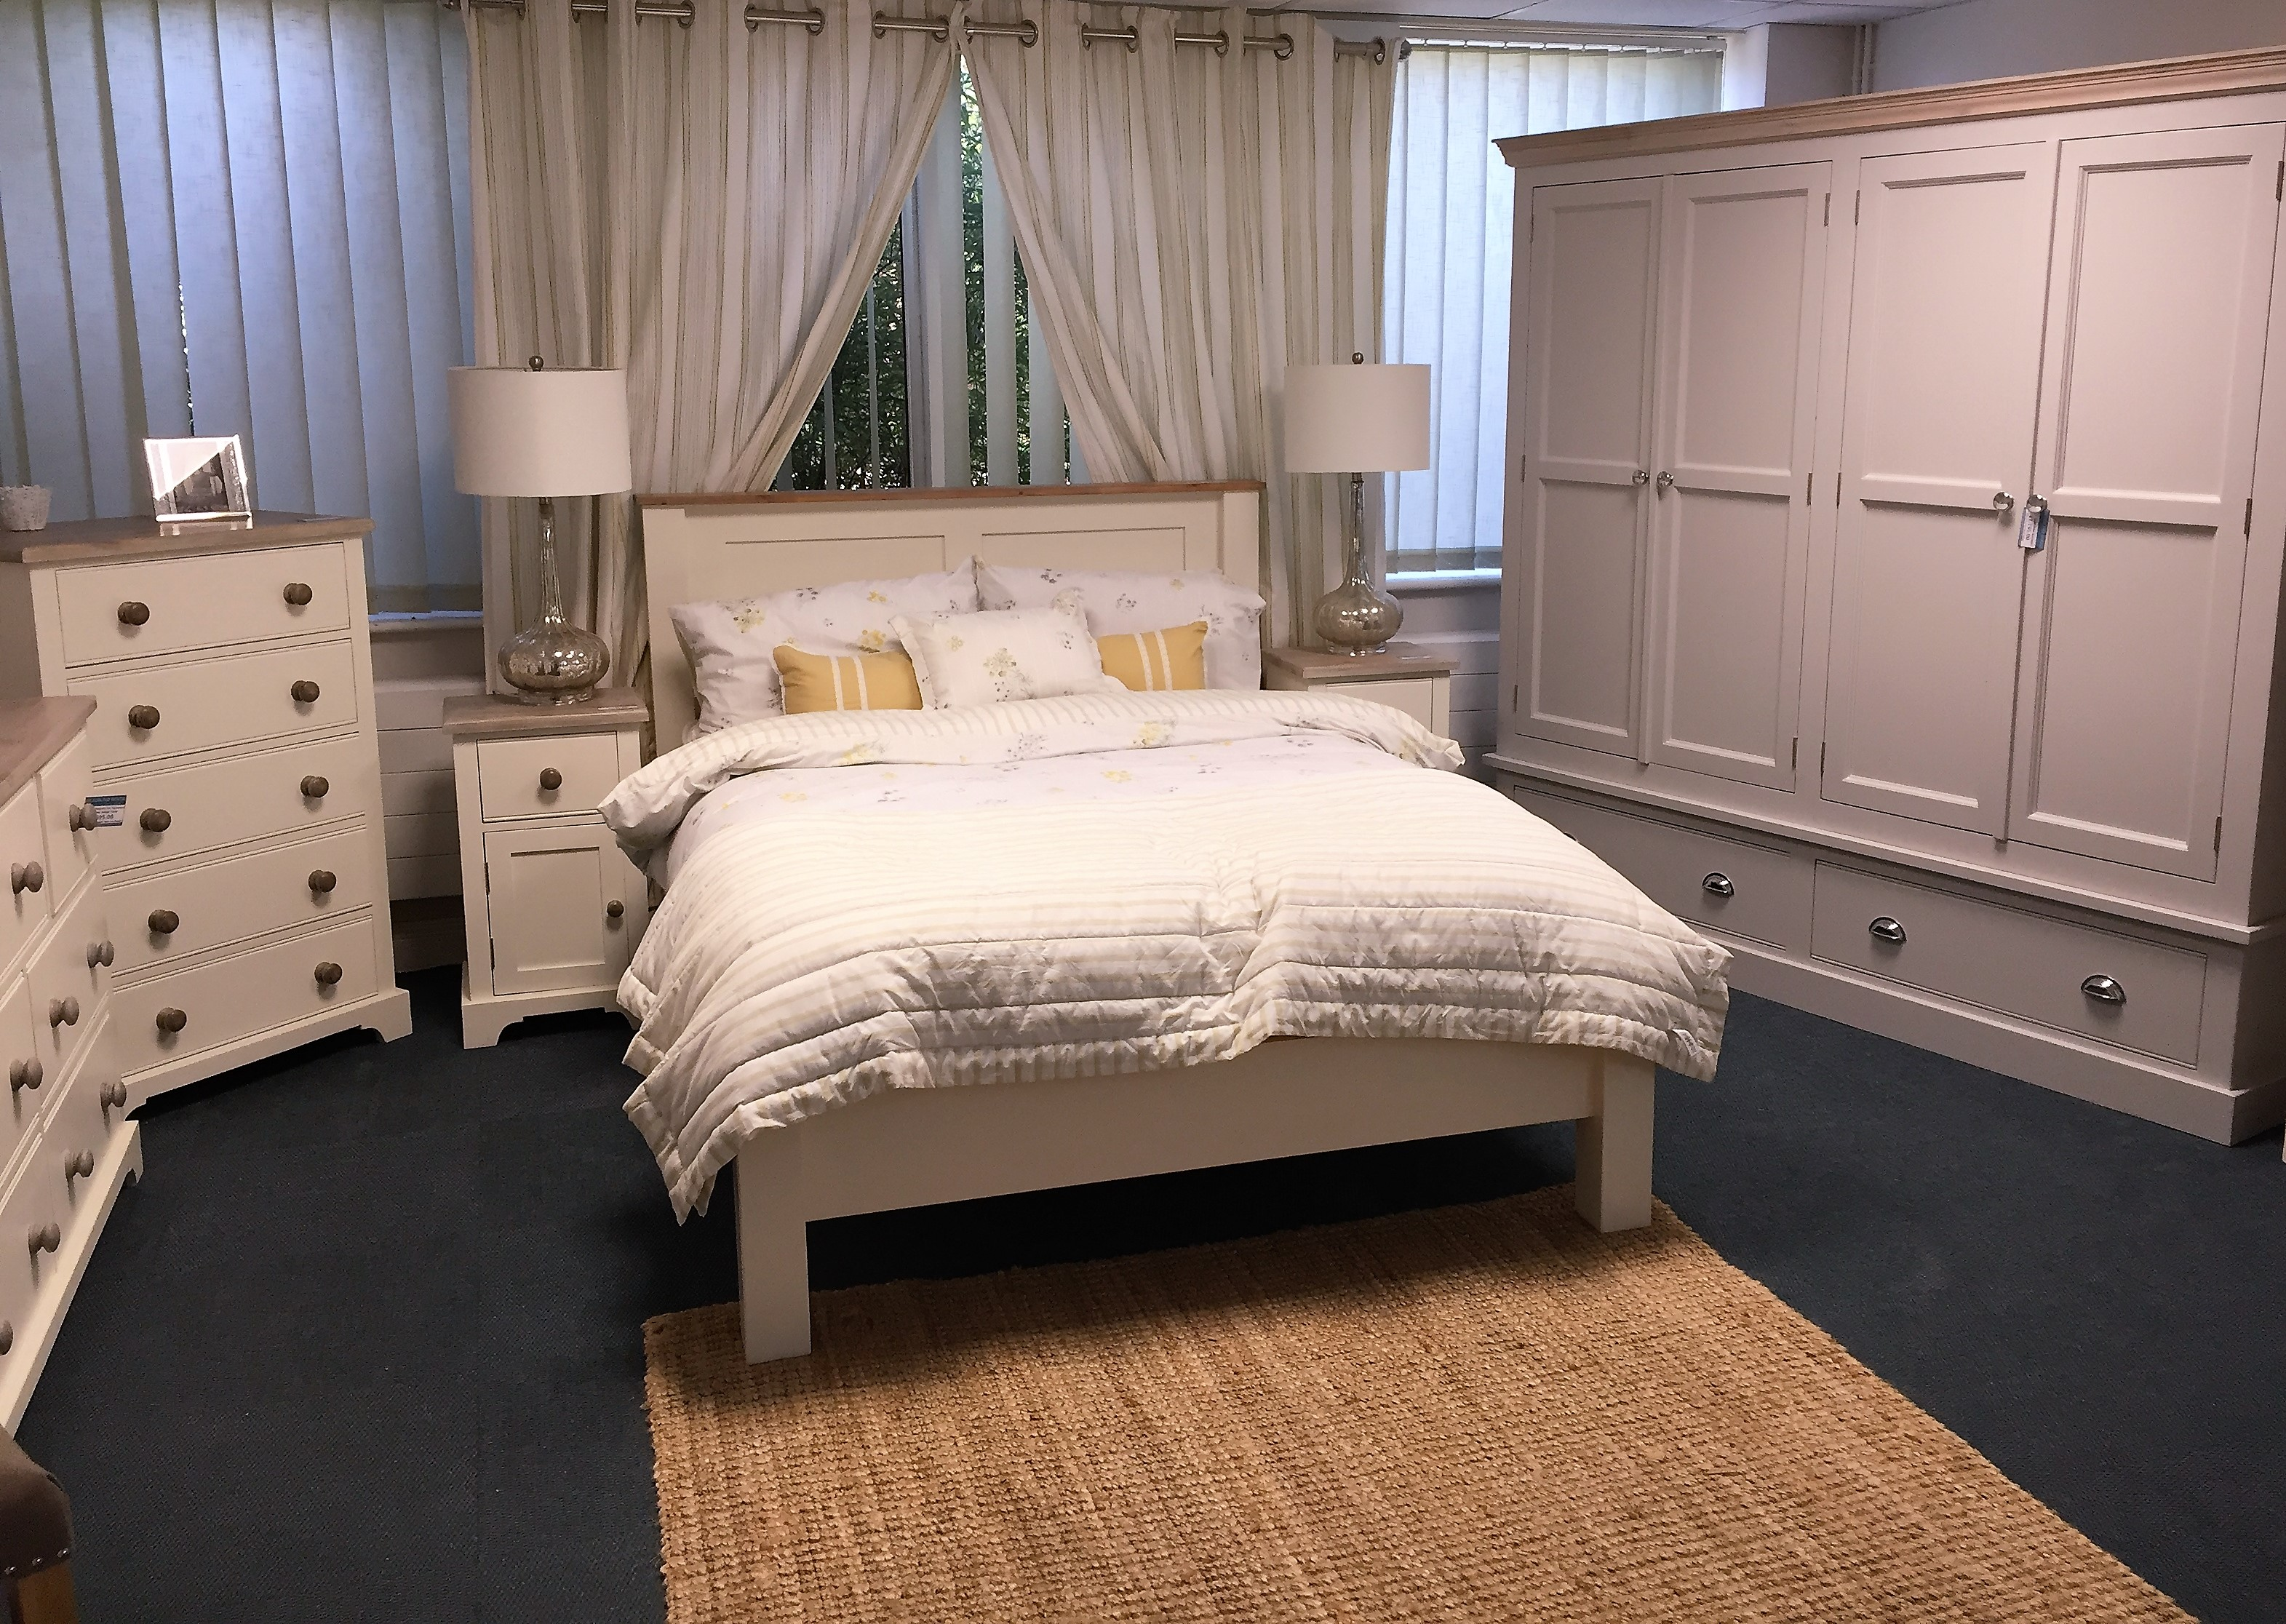 Richmond House Bespoke Bedroom Furniture